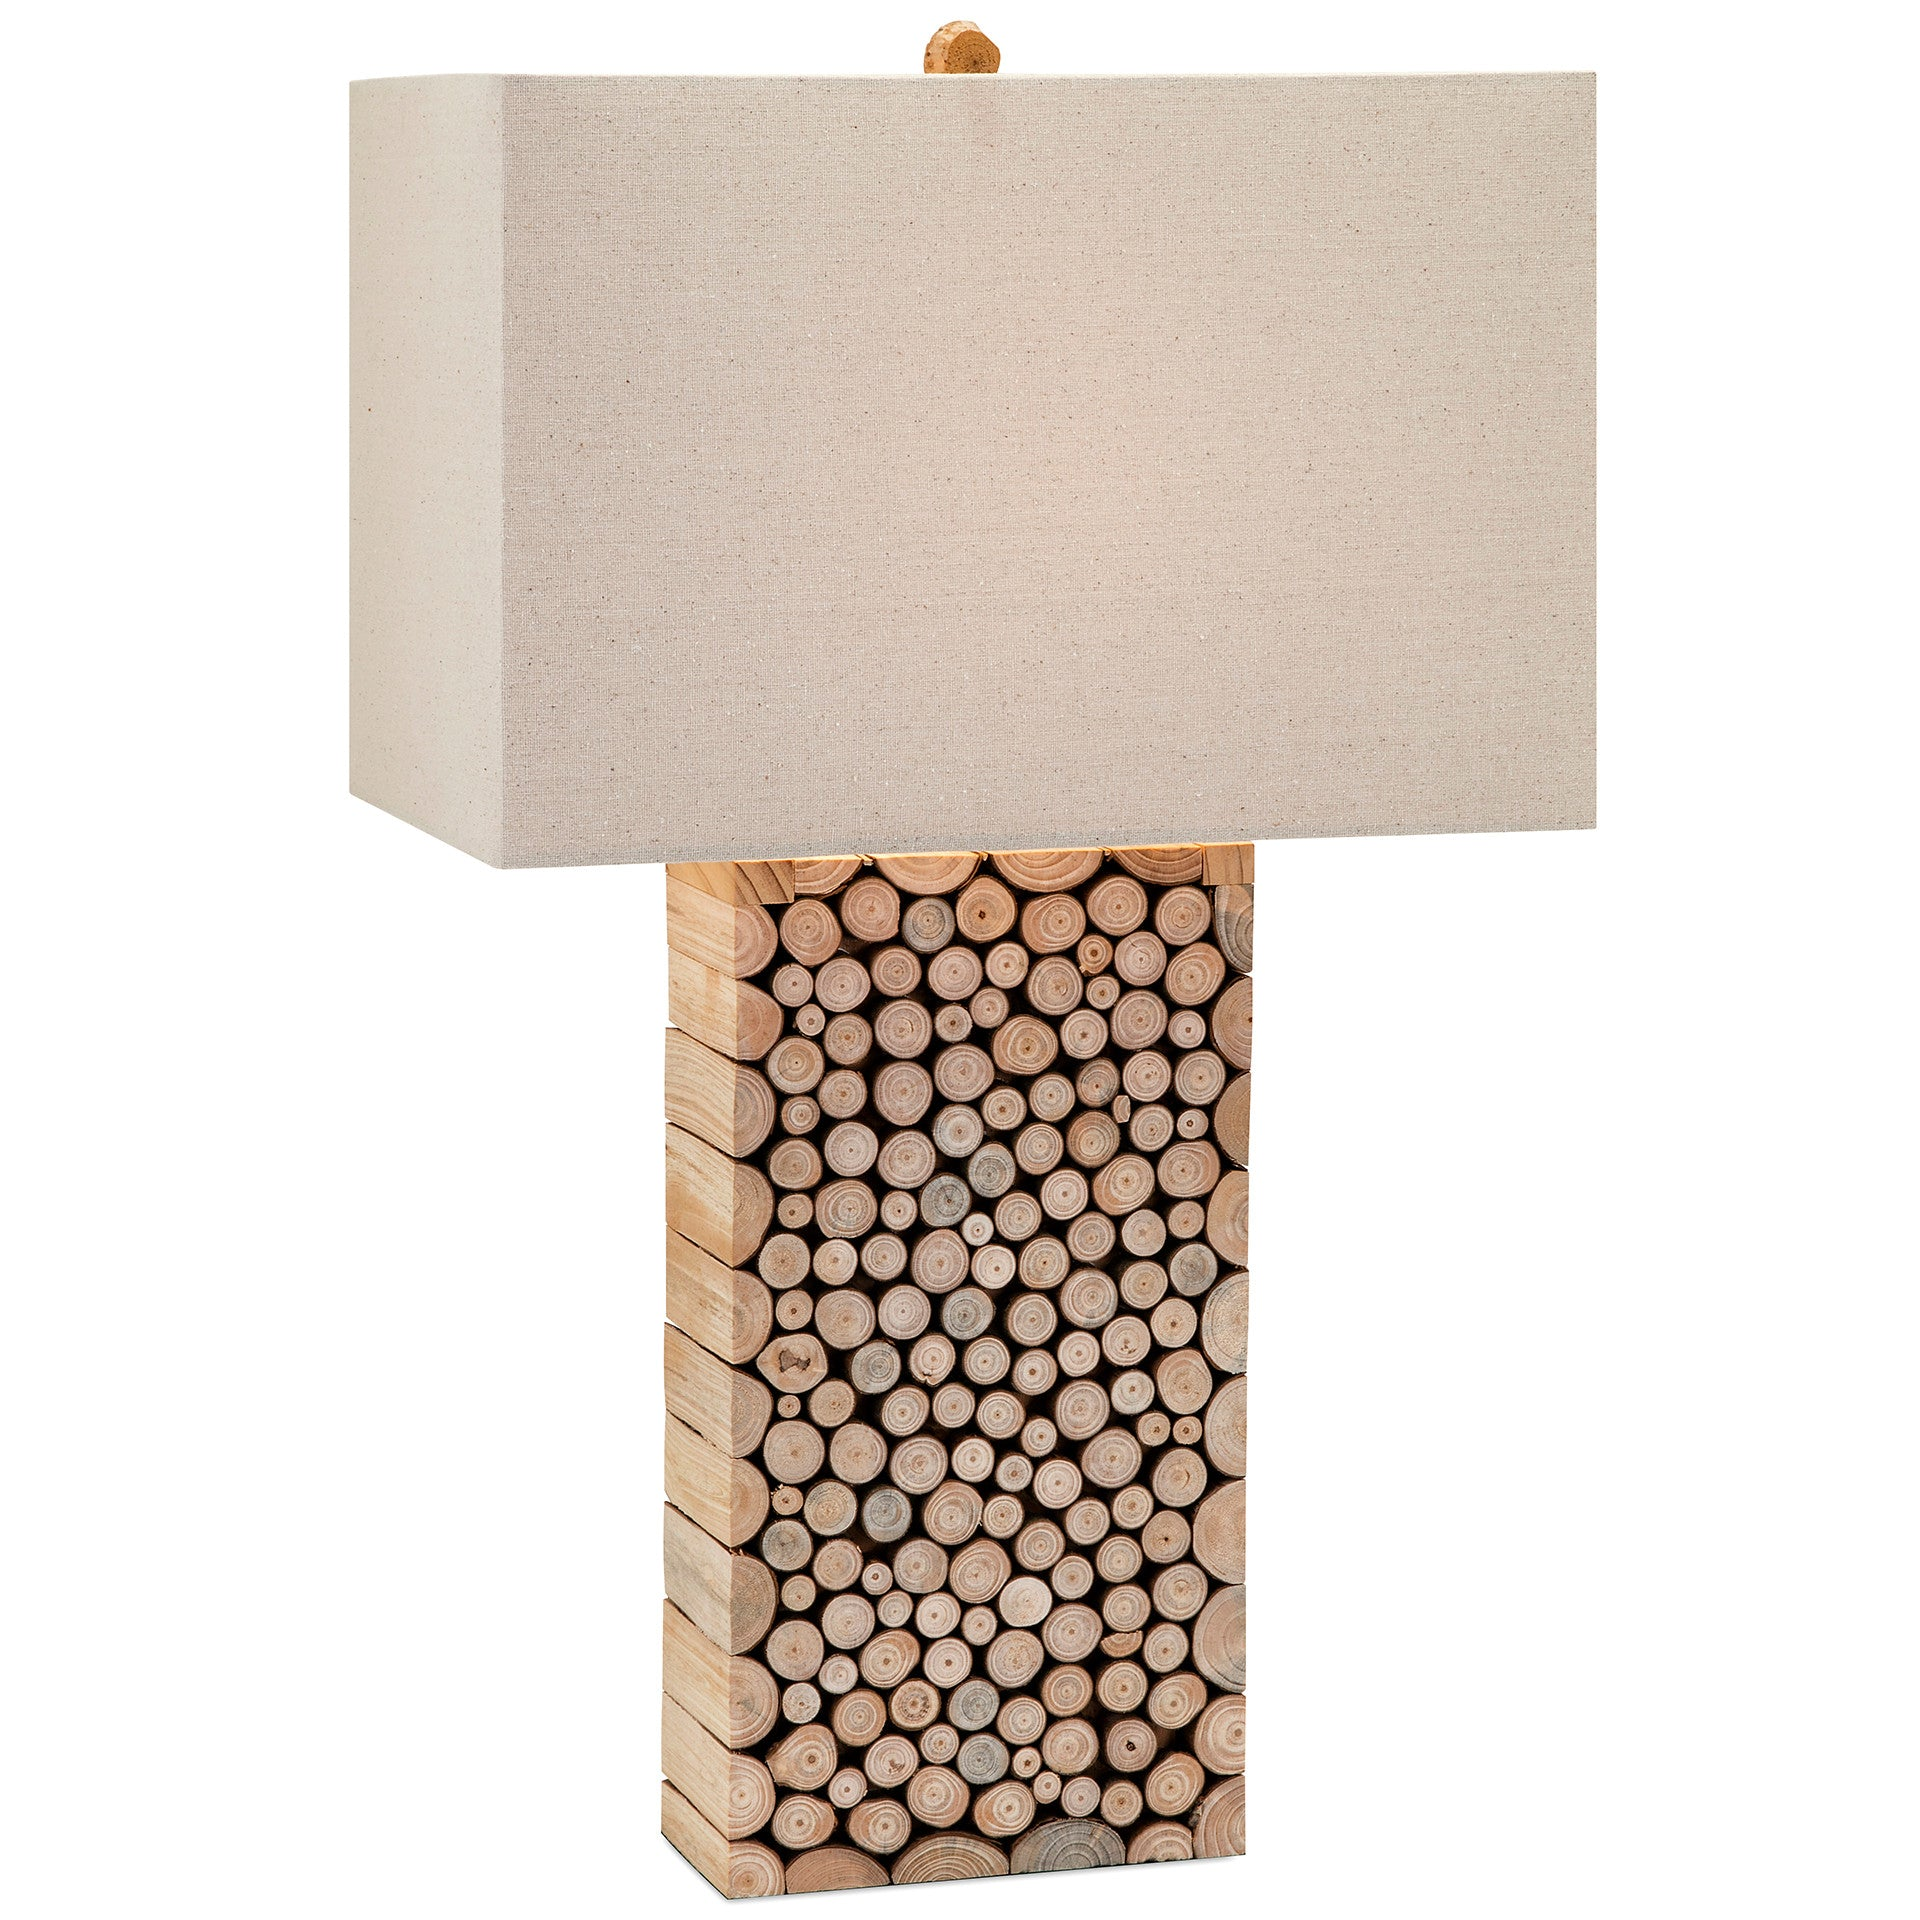 Modern Wood Tree Branch Table Lamp - Woodwaves